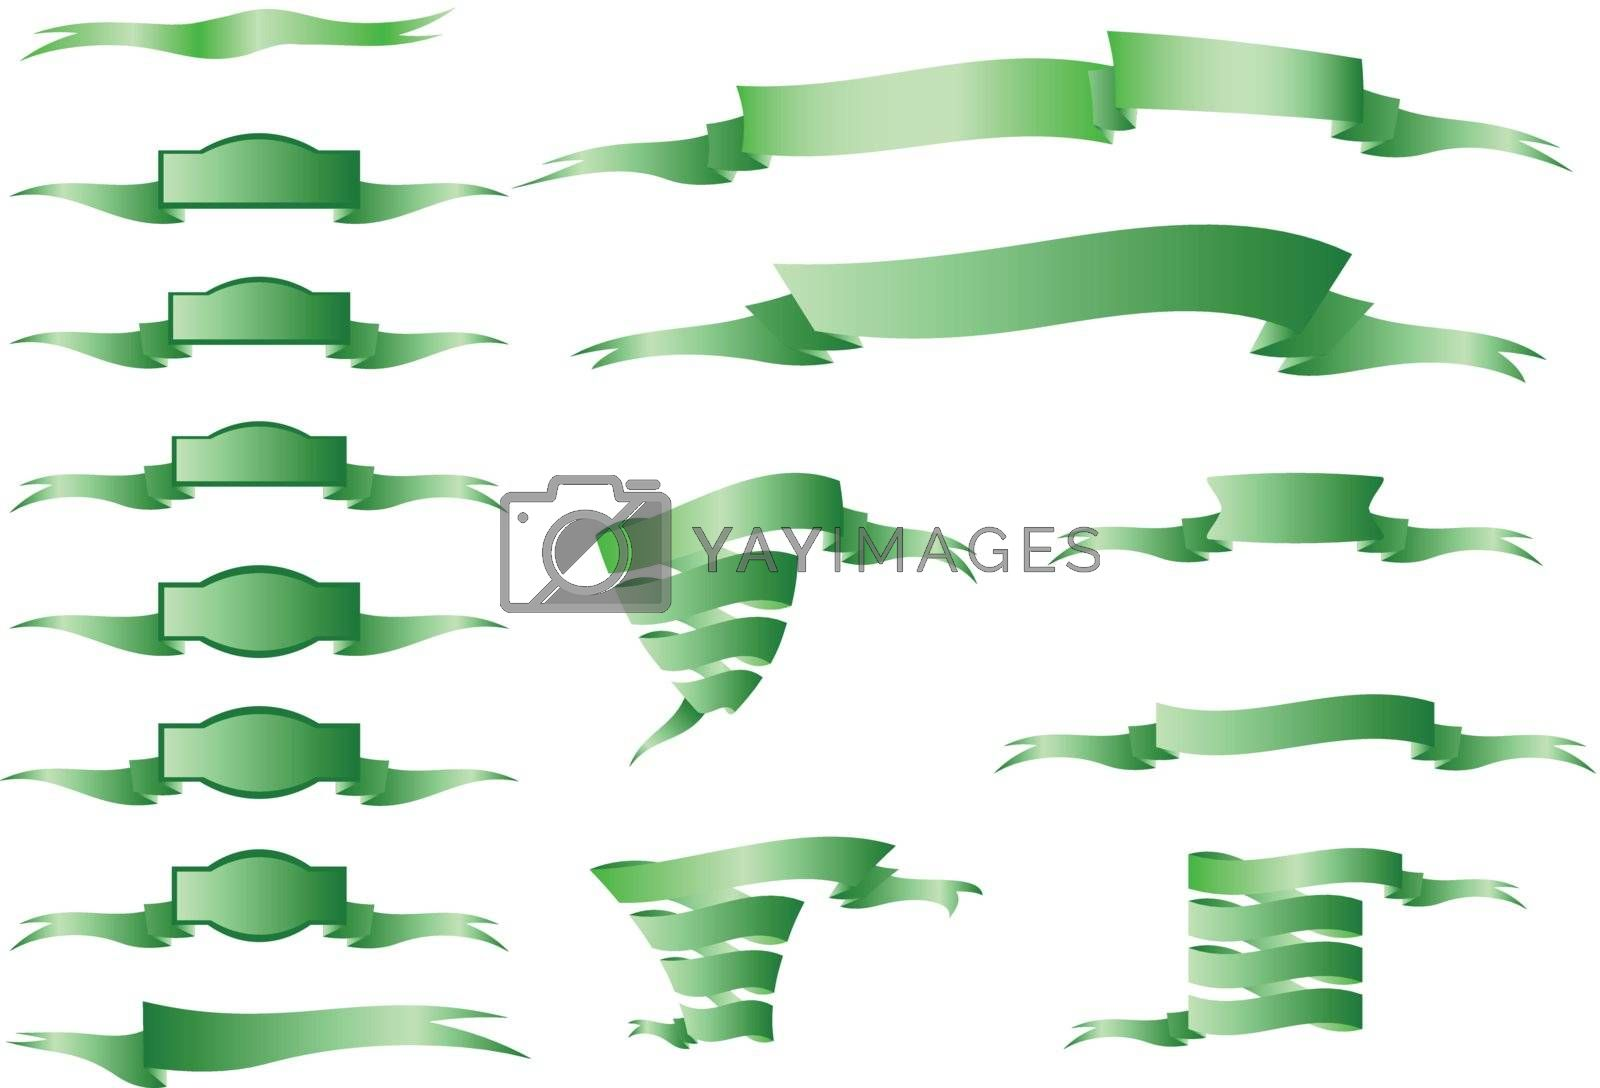 Royalty free image of Collection of Green Ribbons by ajn